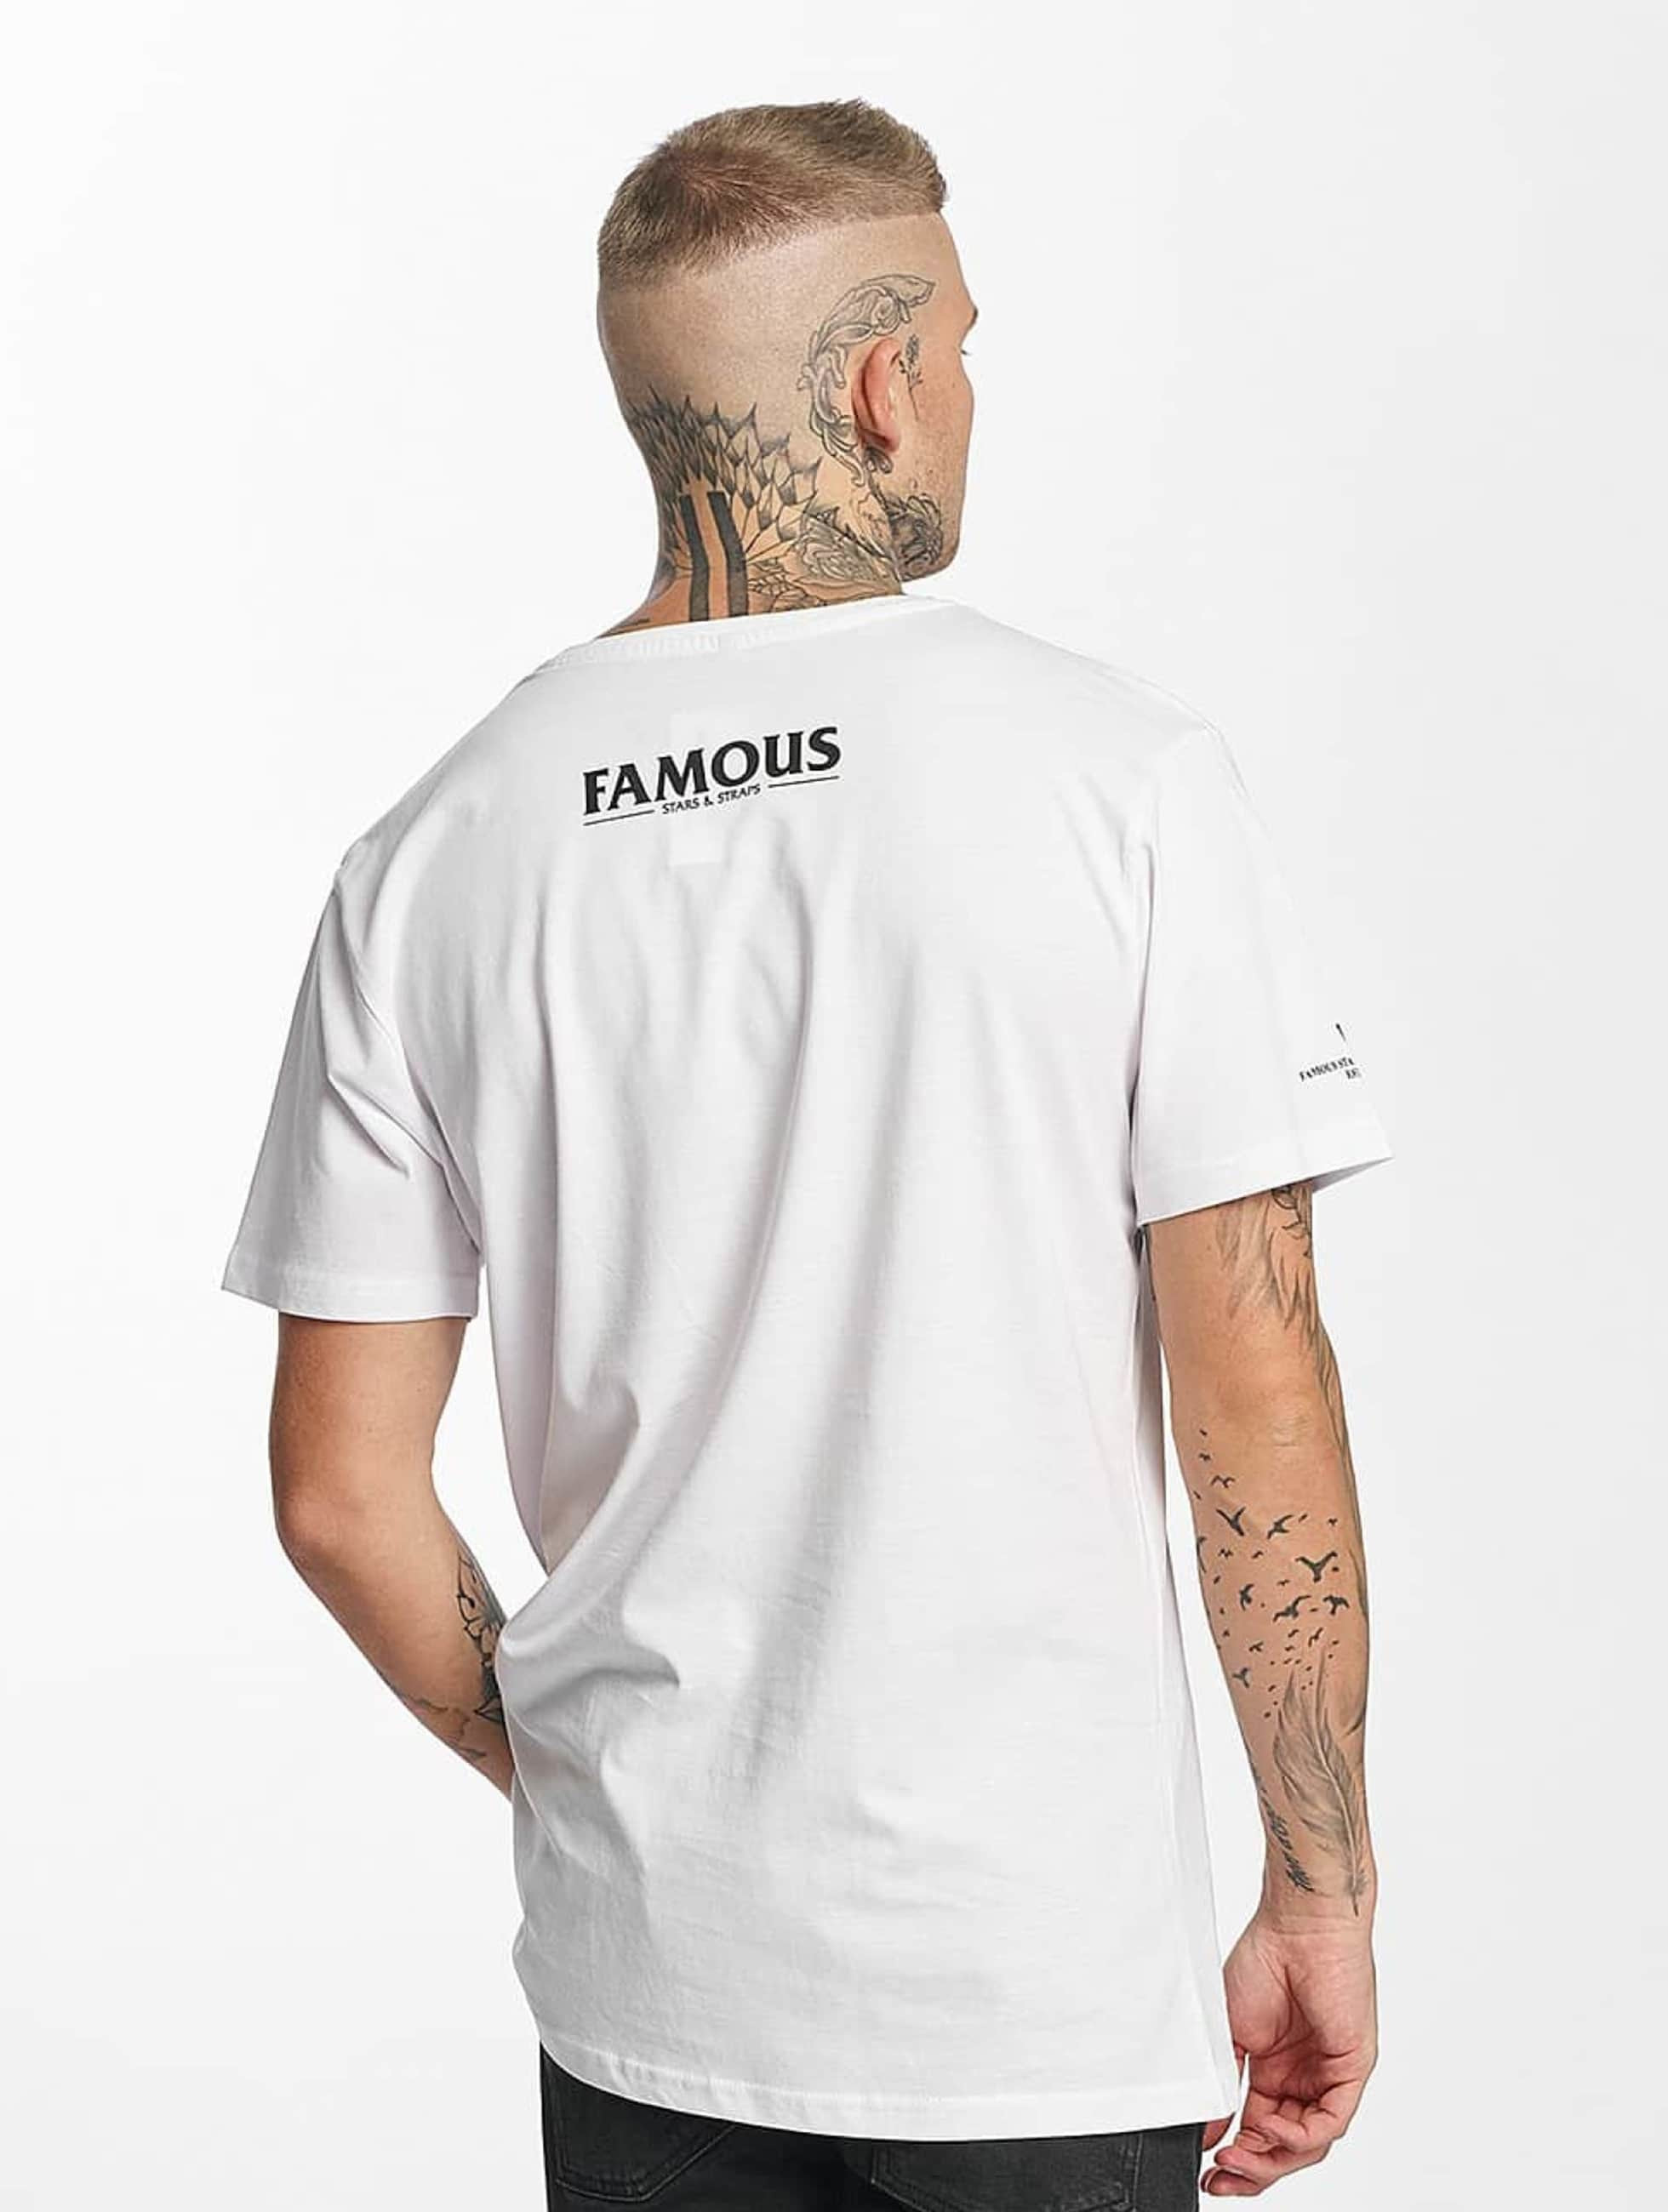 Famous Stars and Straps T-shirt Drums Drums Drums bianco